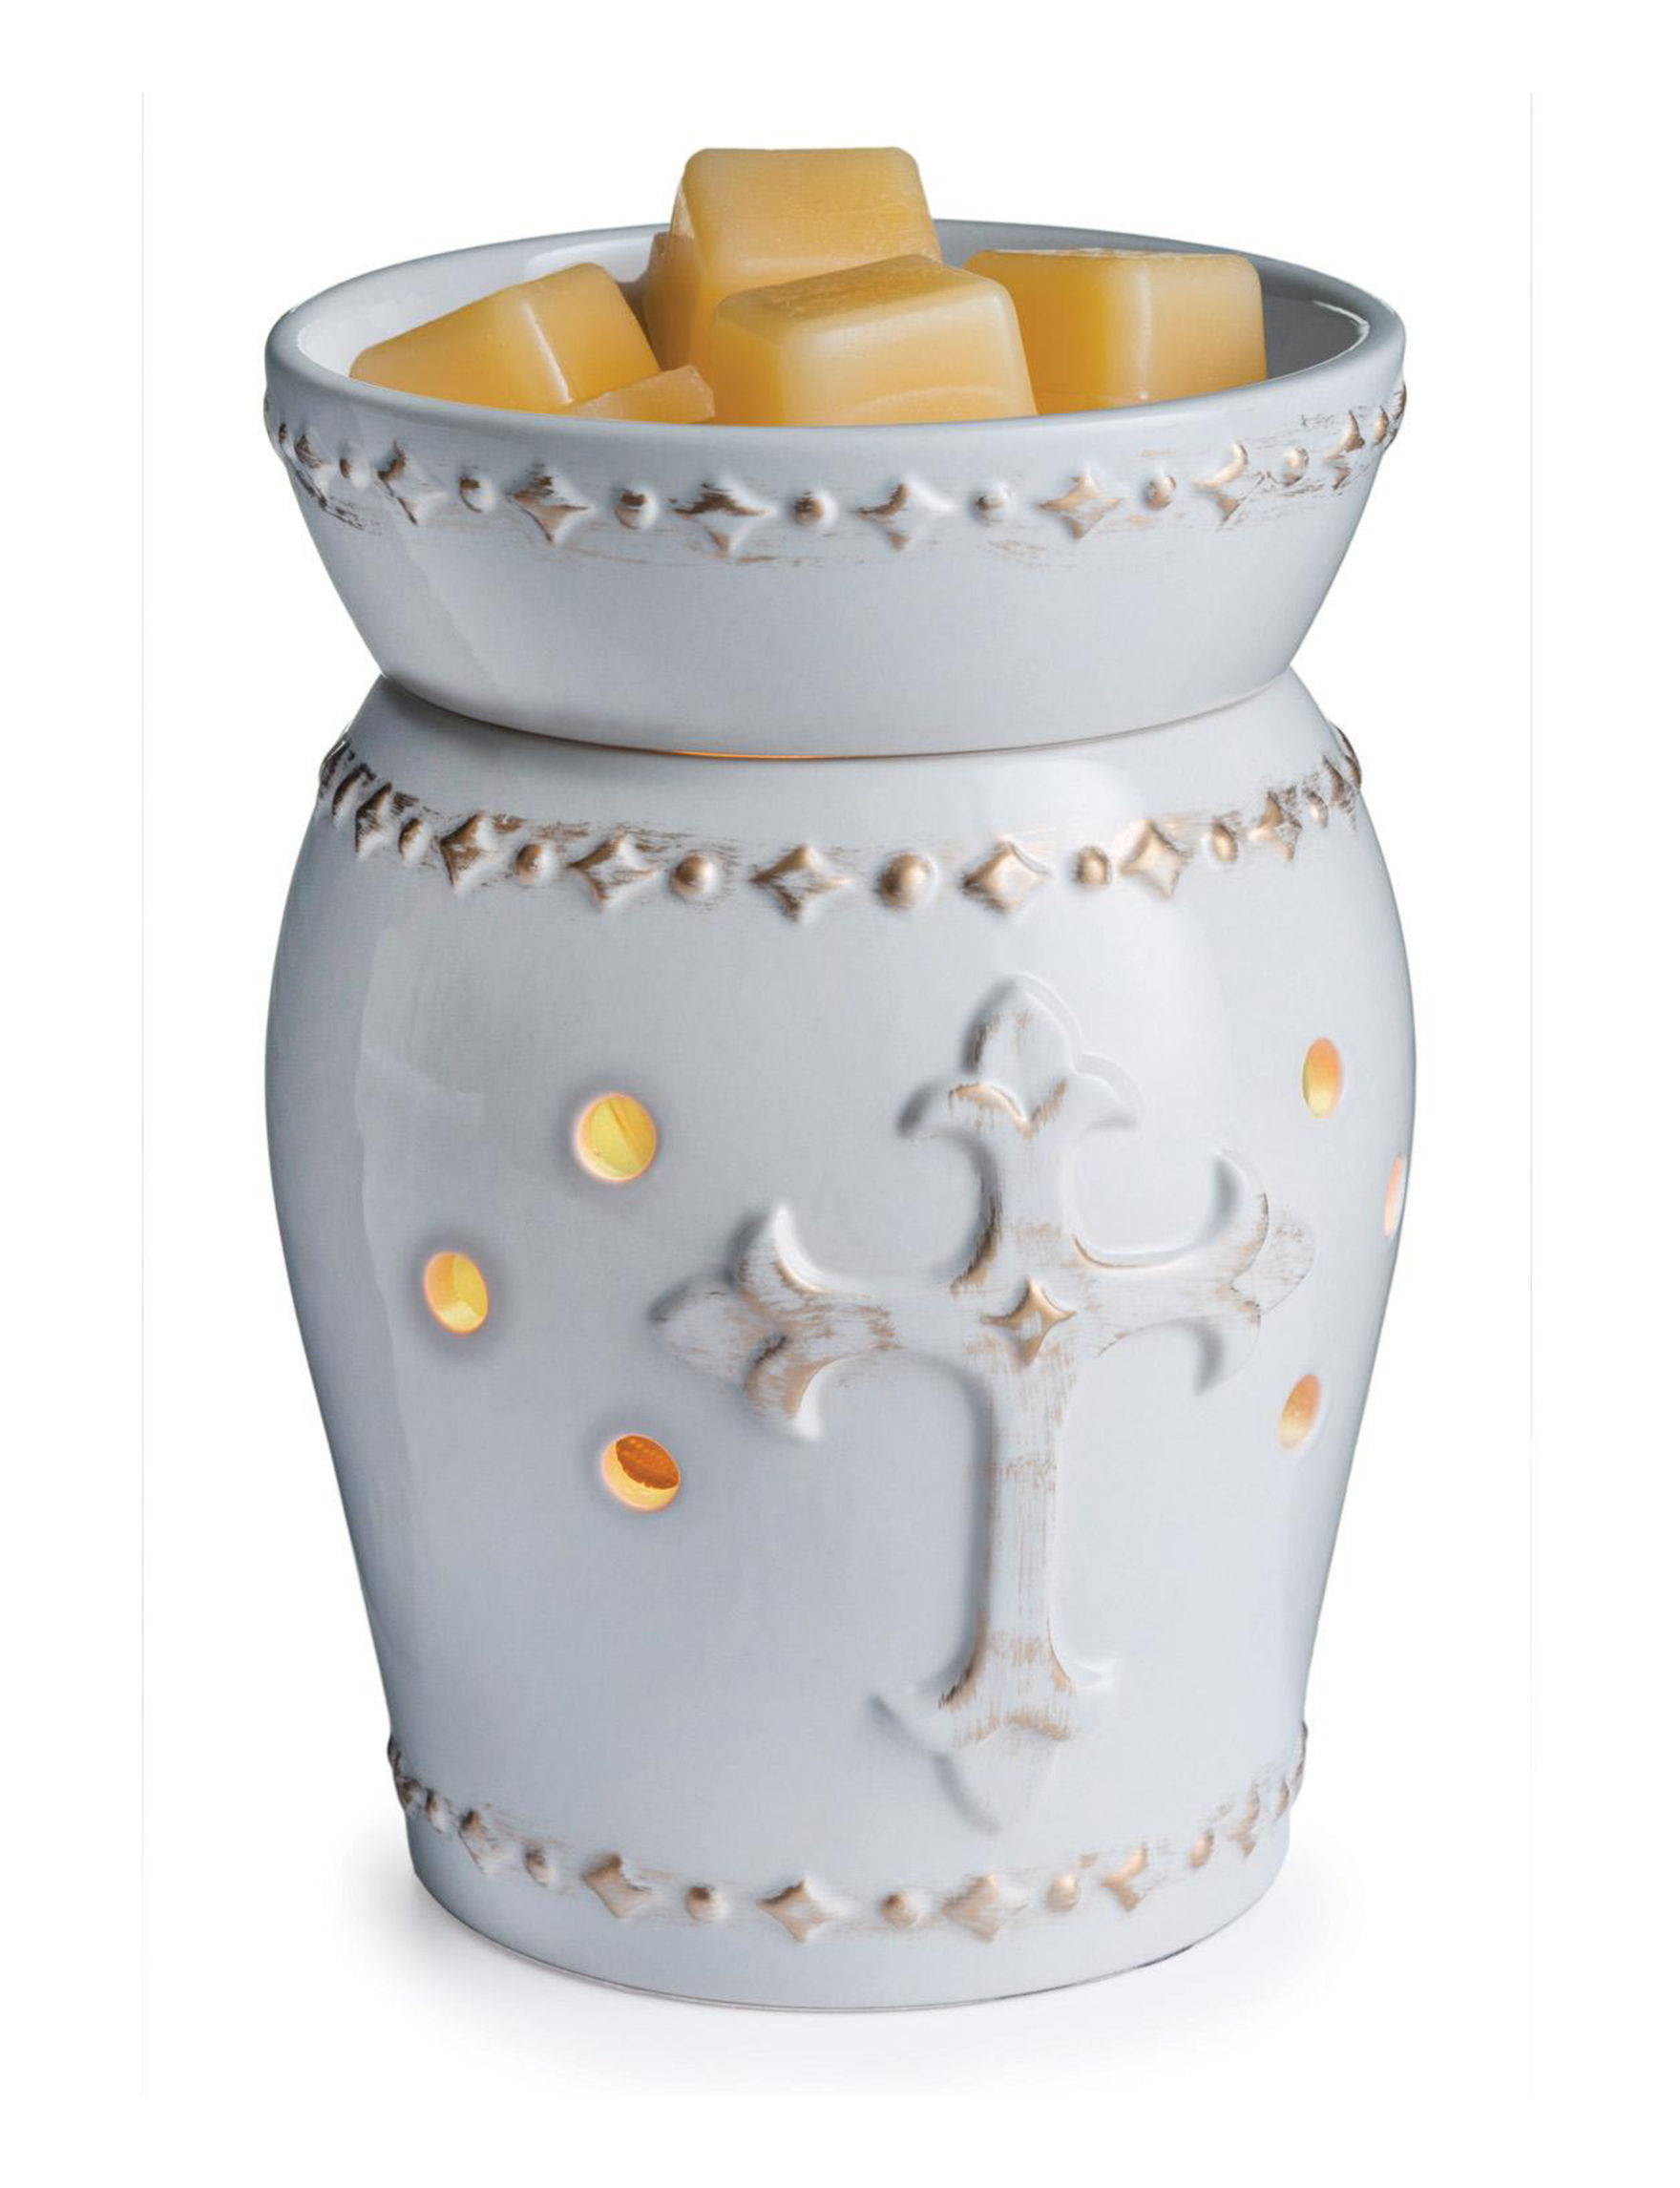 Candle Warmers  Candles Warmers & Plug Ins Candles & Diffusers Home Accents Warmers & Plug-Ins1